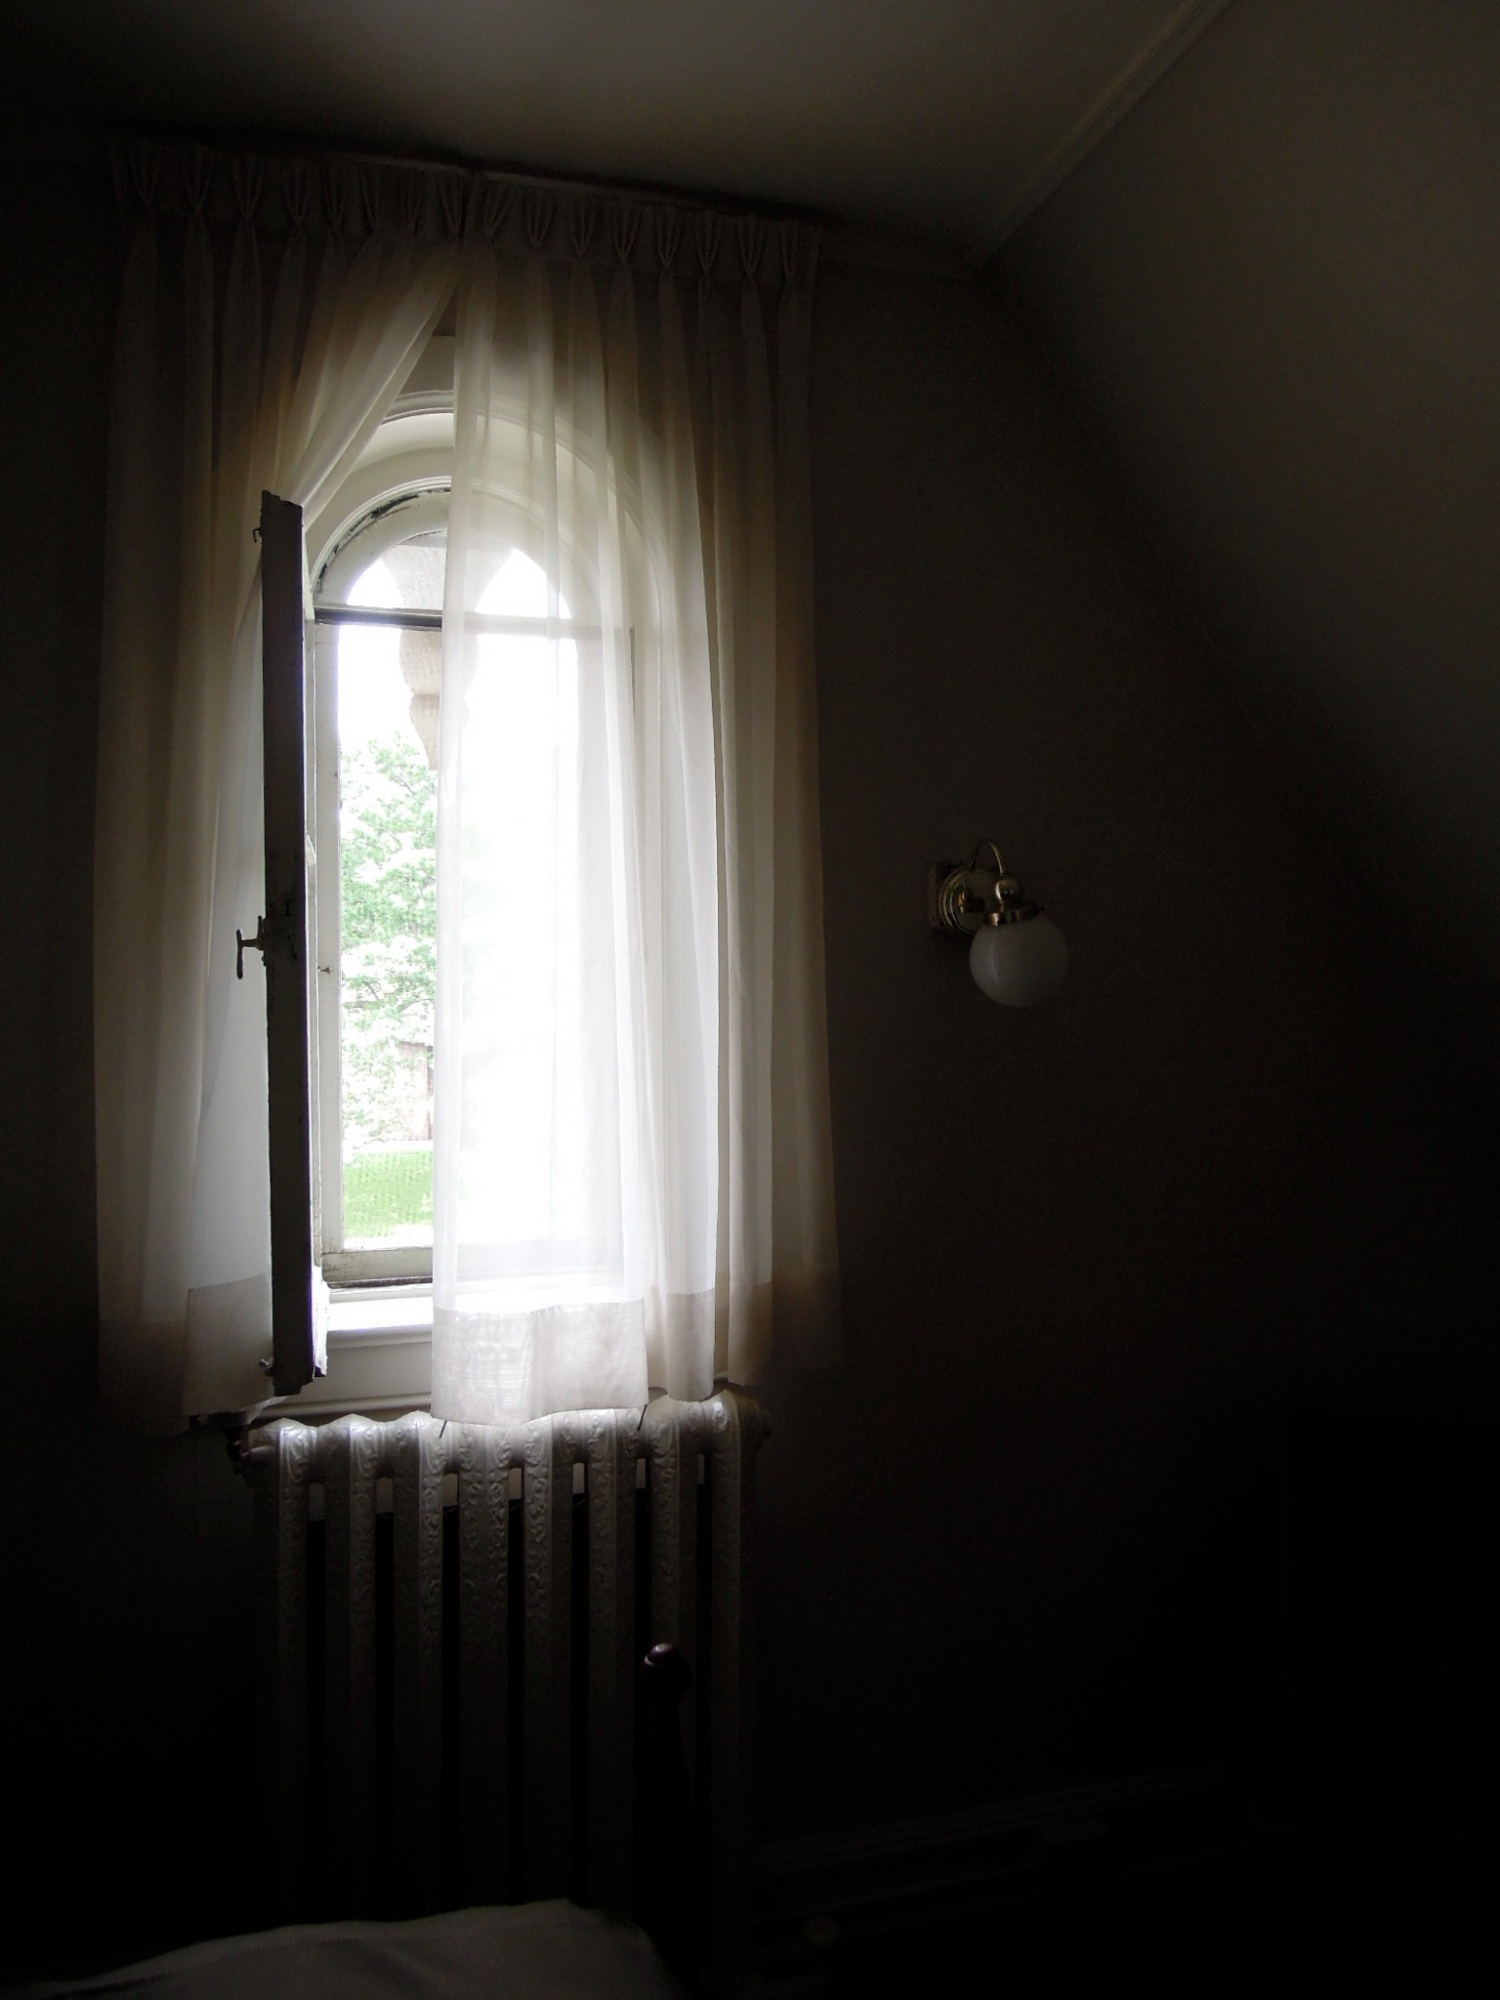 Sheer curtain over an open window